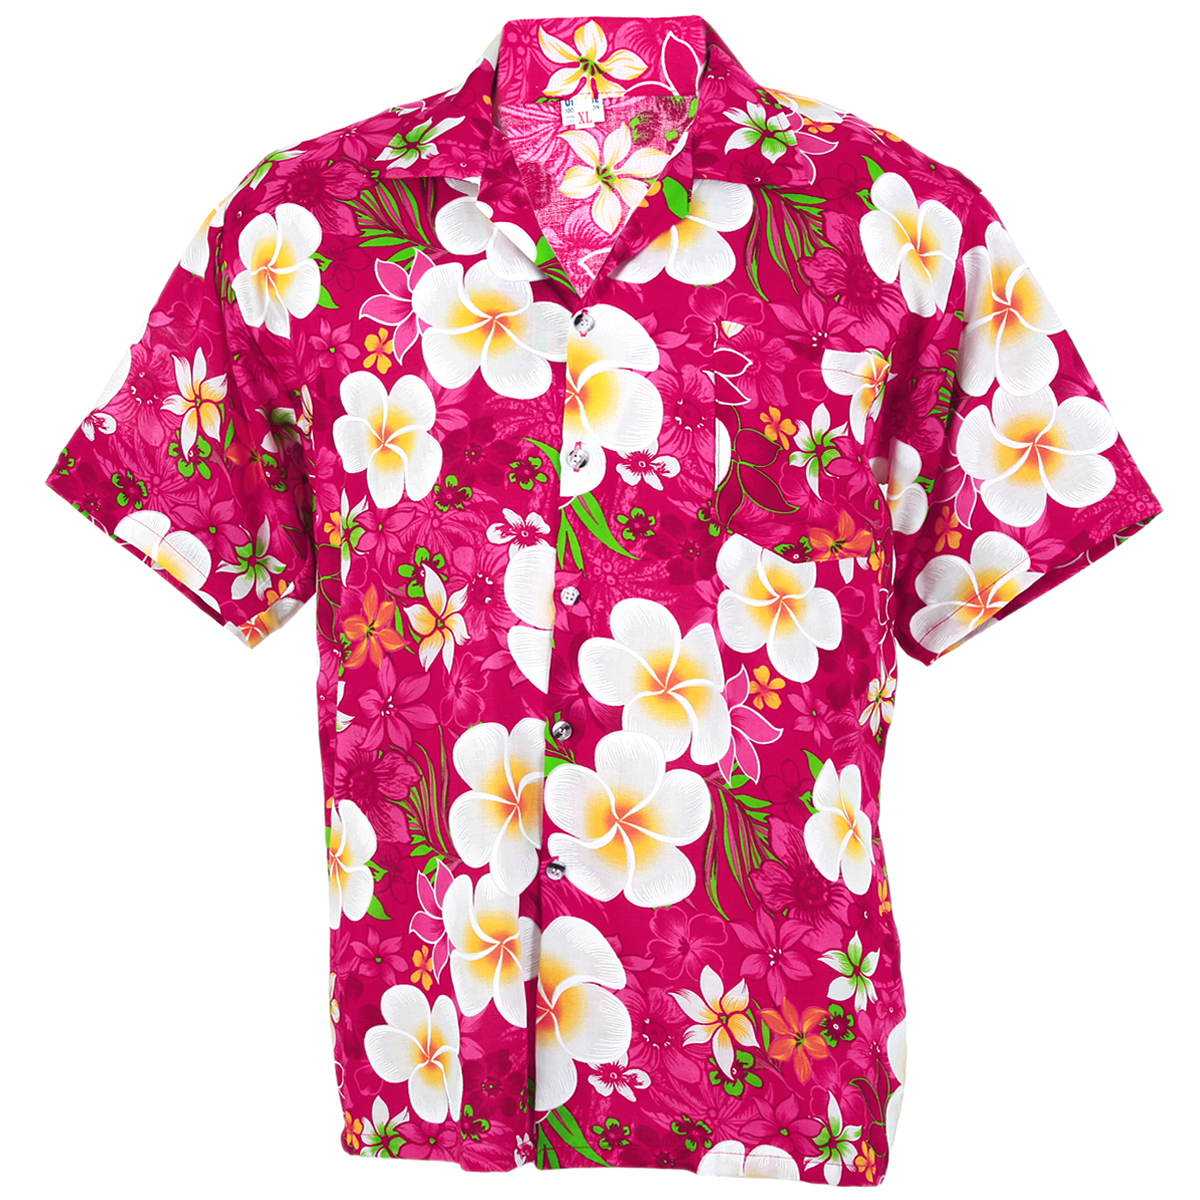 Hawaiian Shirt Aloha Big Chaba Hibiscus Holiday Sea Beach Pink L Hc258p